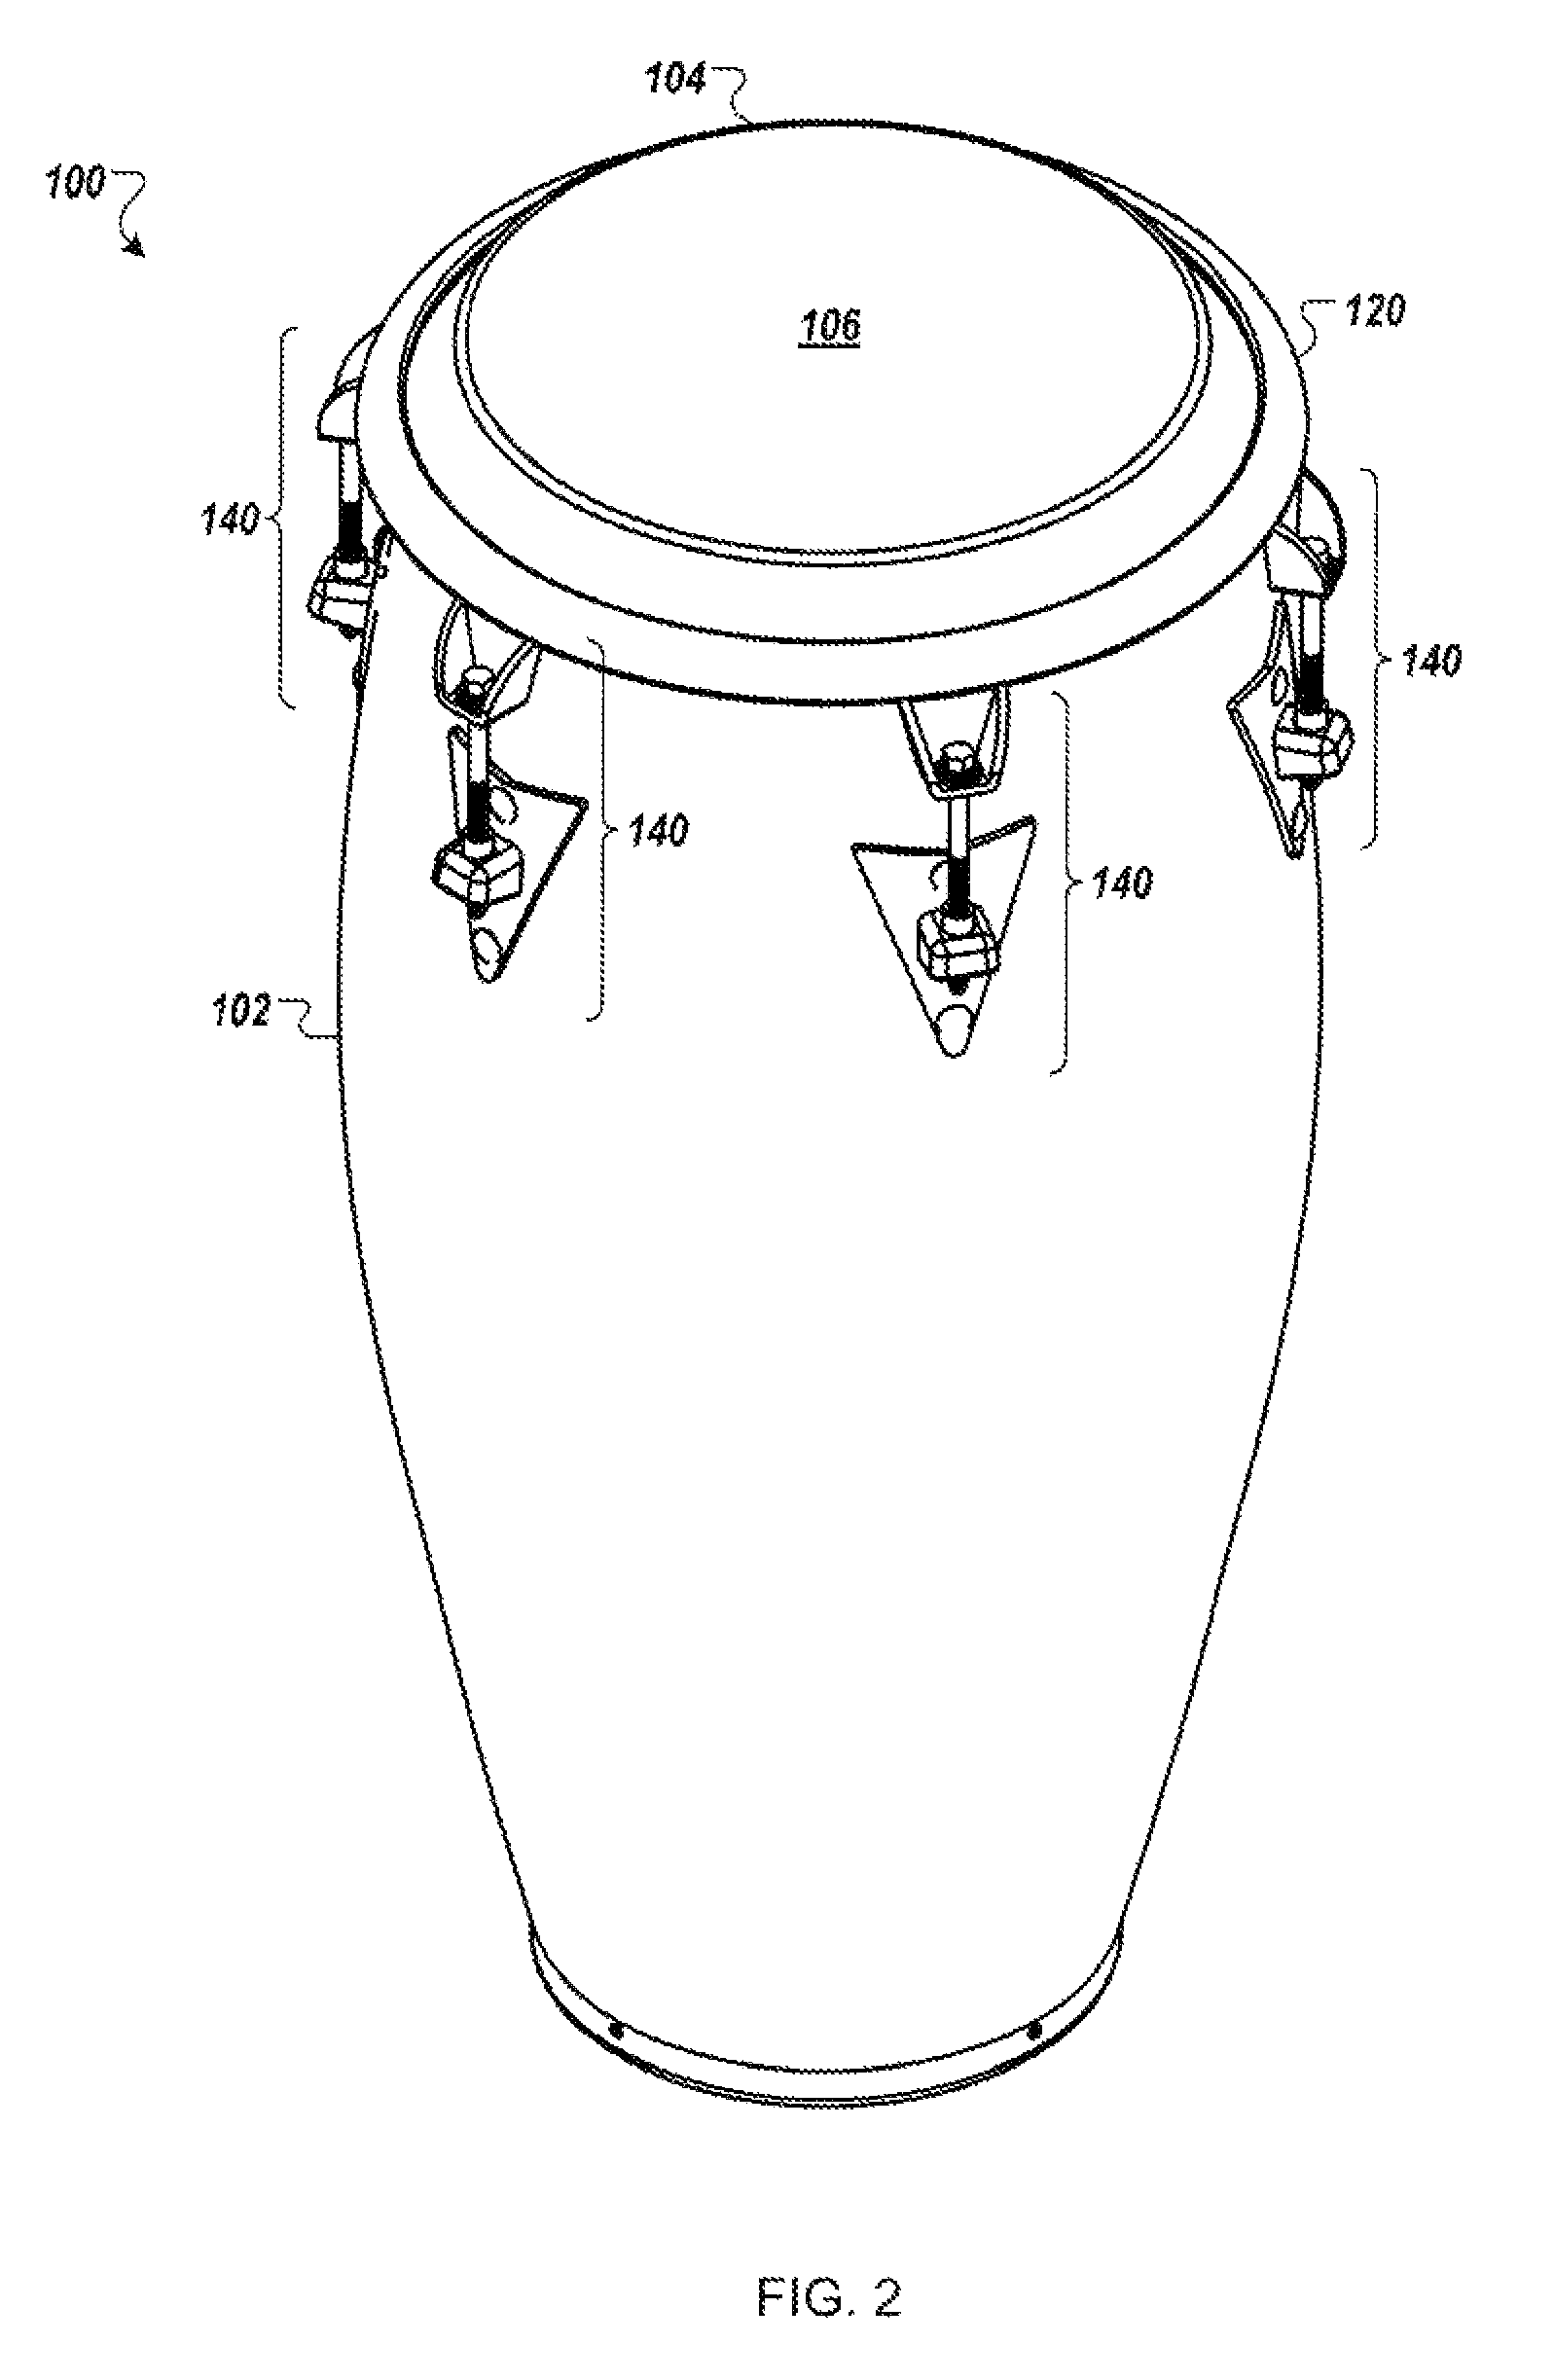 Drawn instrument percussion instrument Patent  Patent for Top